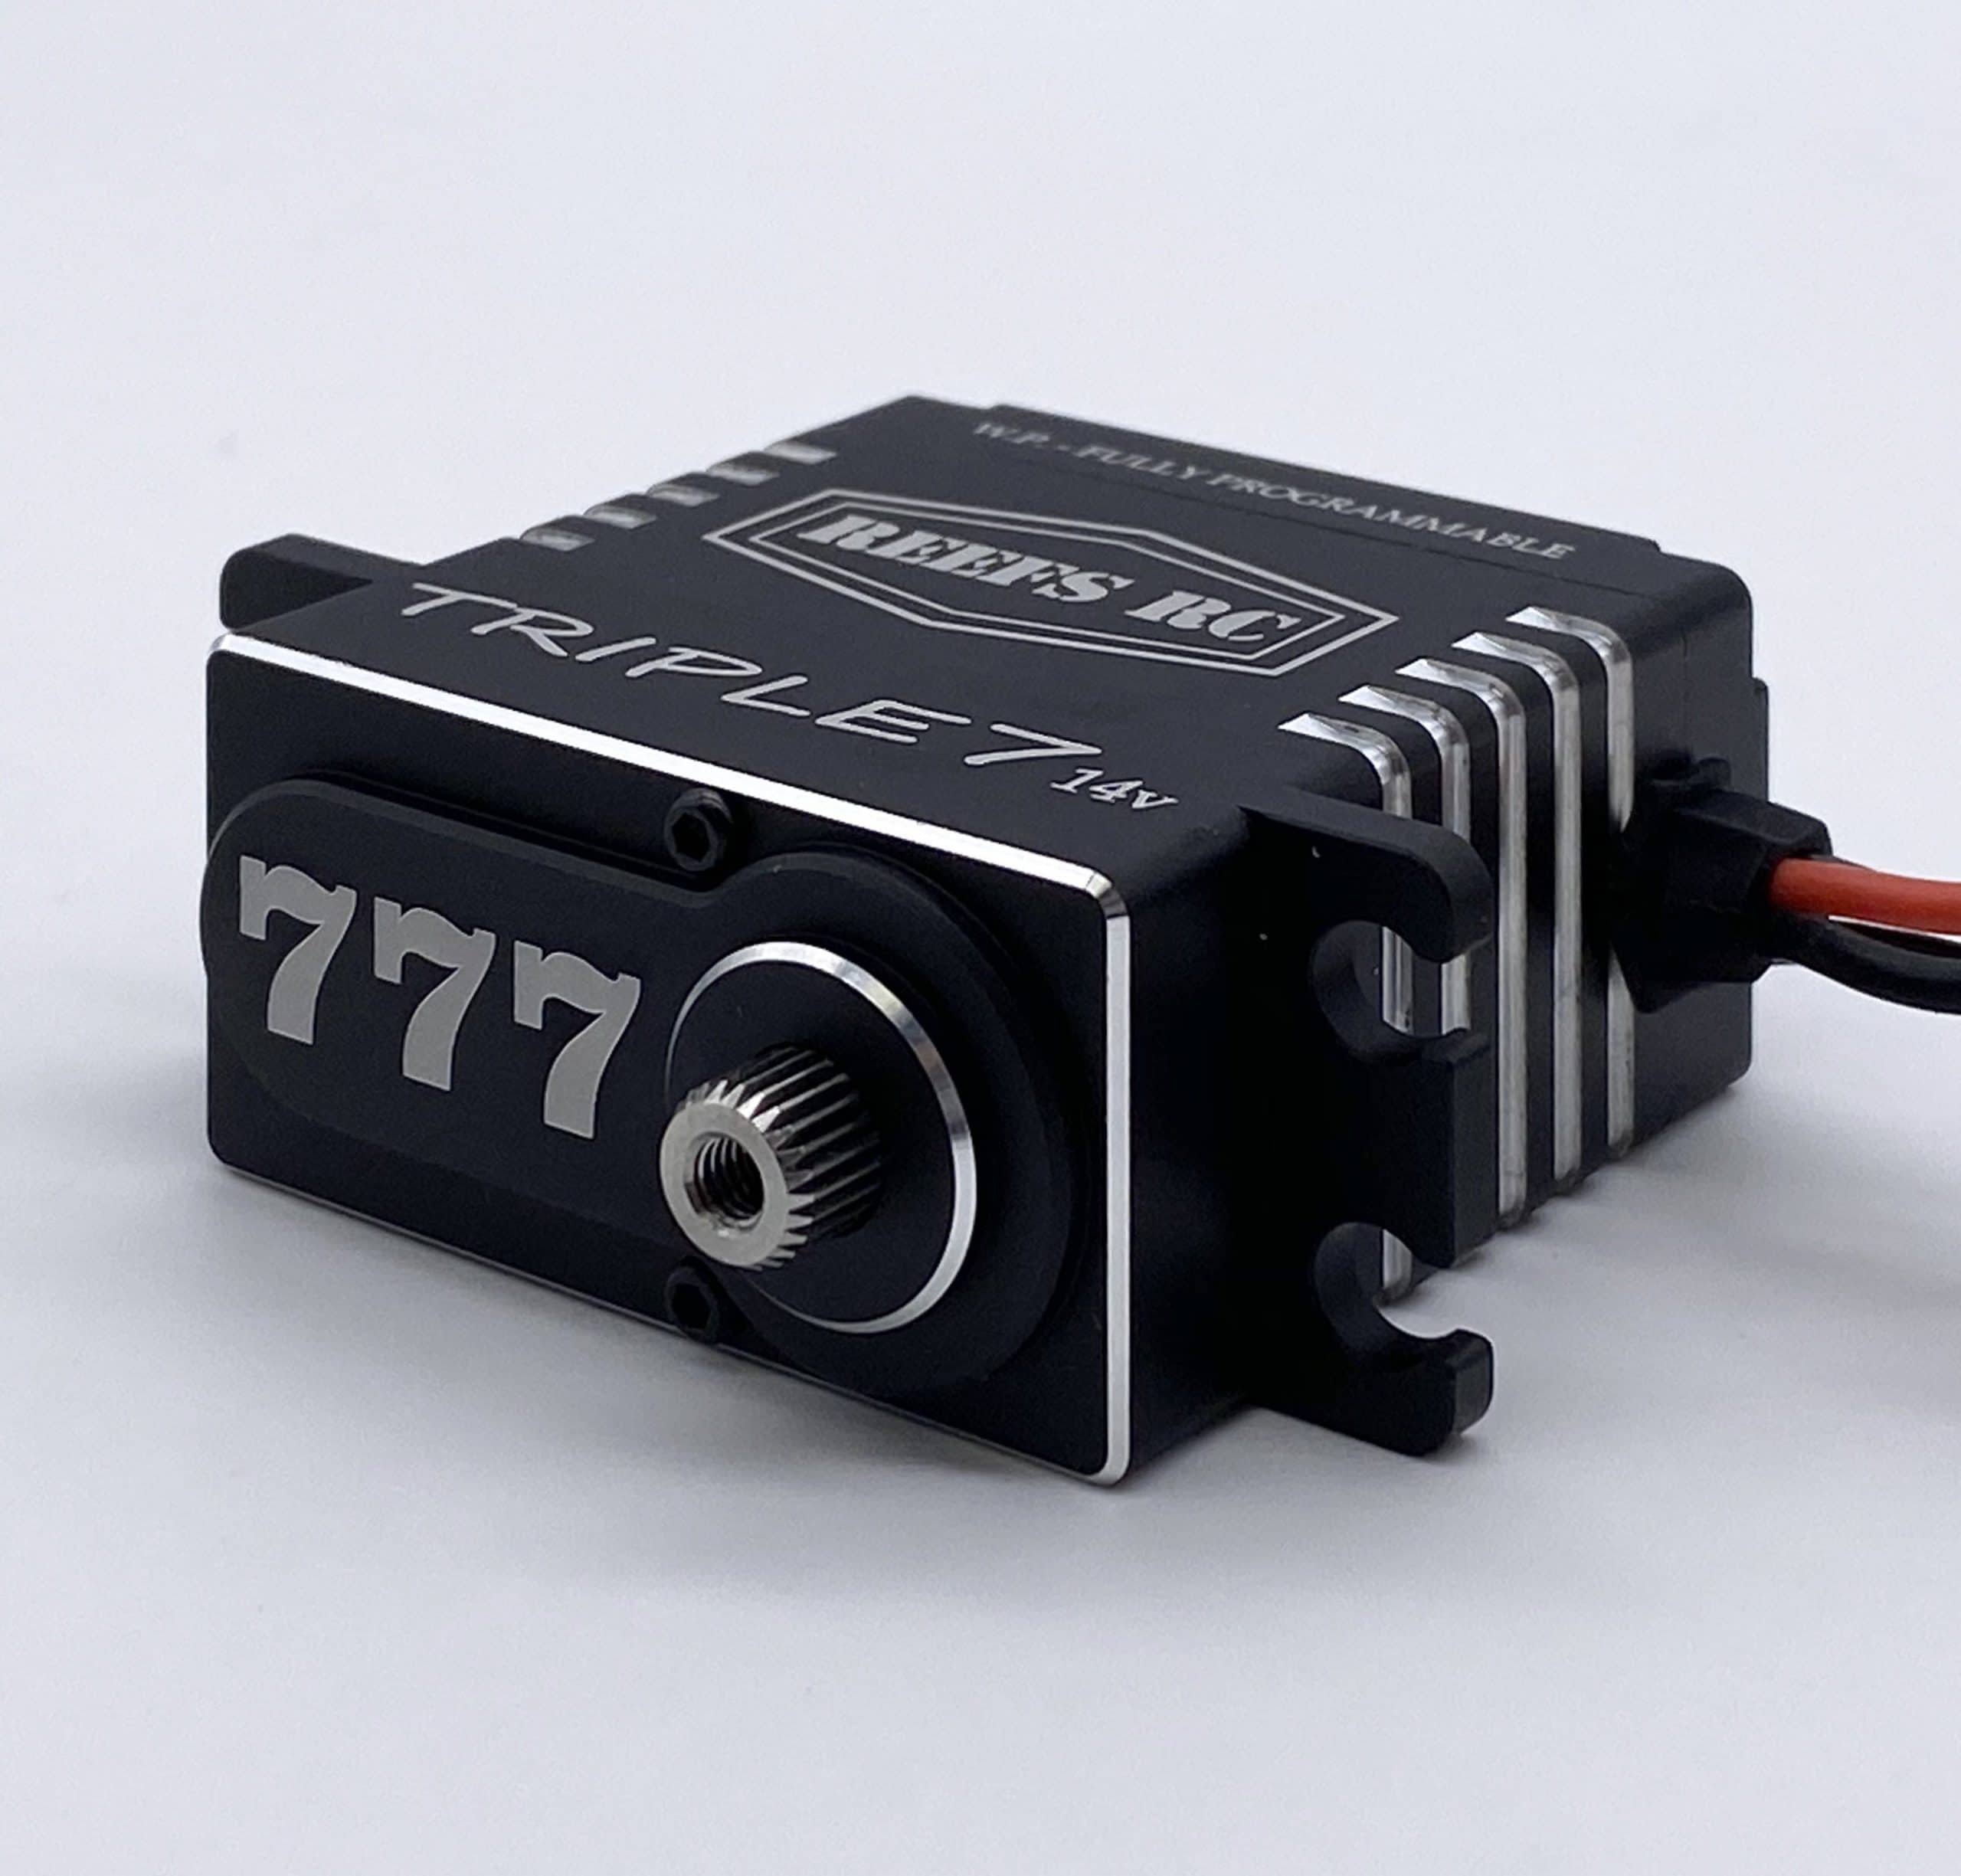 Turn up the Torque with the Triple7 Servo from REEF'S R/C